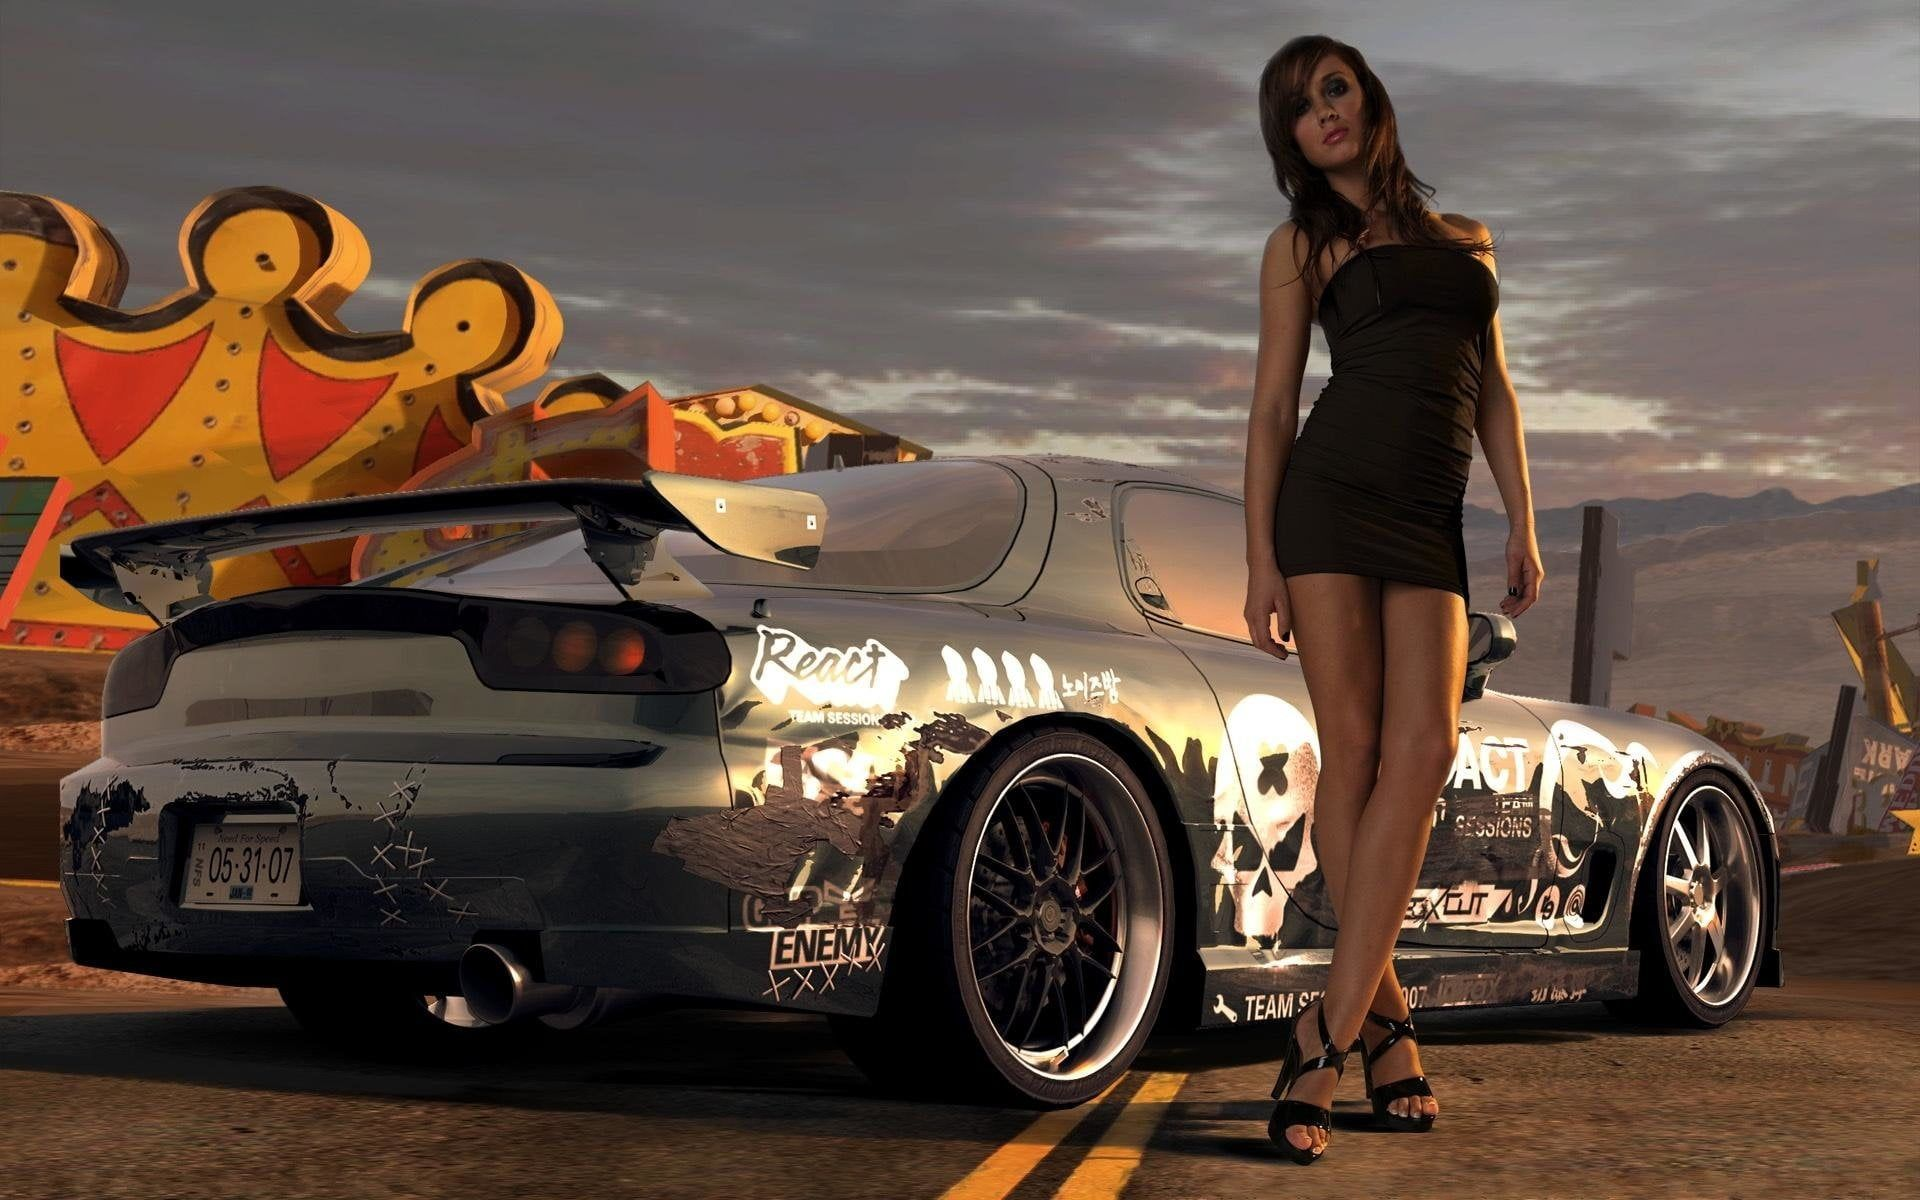 Gray Mazda Rx 7 Women Girls Amp Cars 1080p Wallpaper Hdwallpaper Desktop In 2020 Street Racing Cars Car Wallpapers Hot Cars